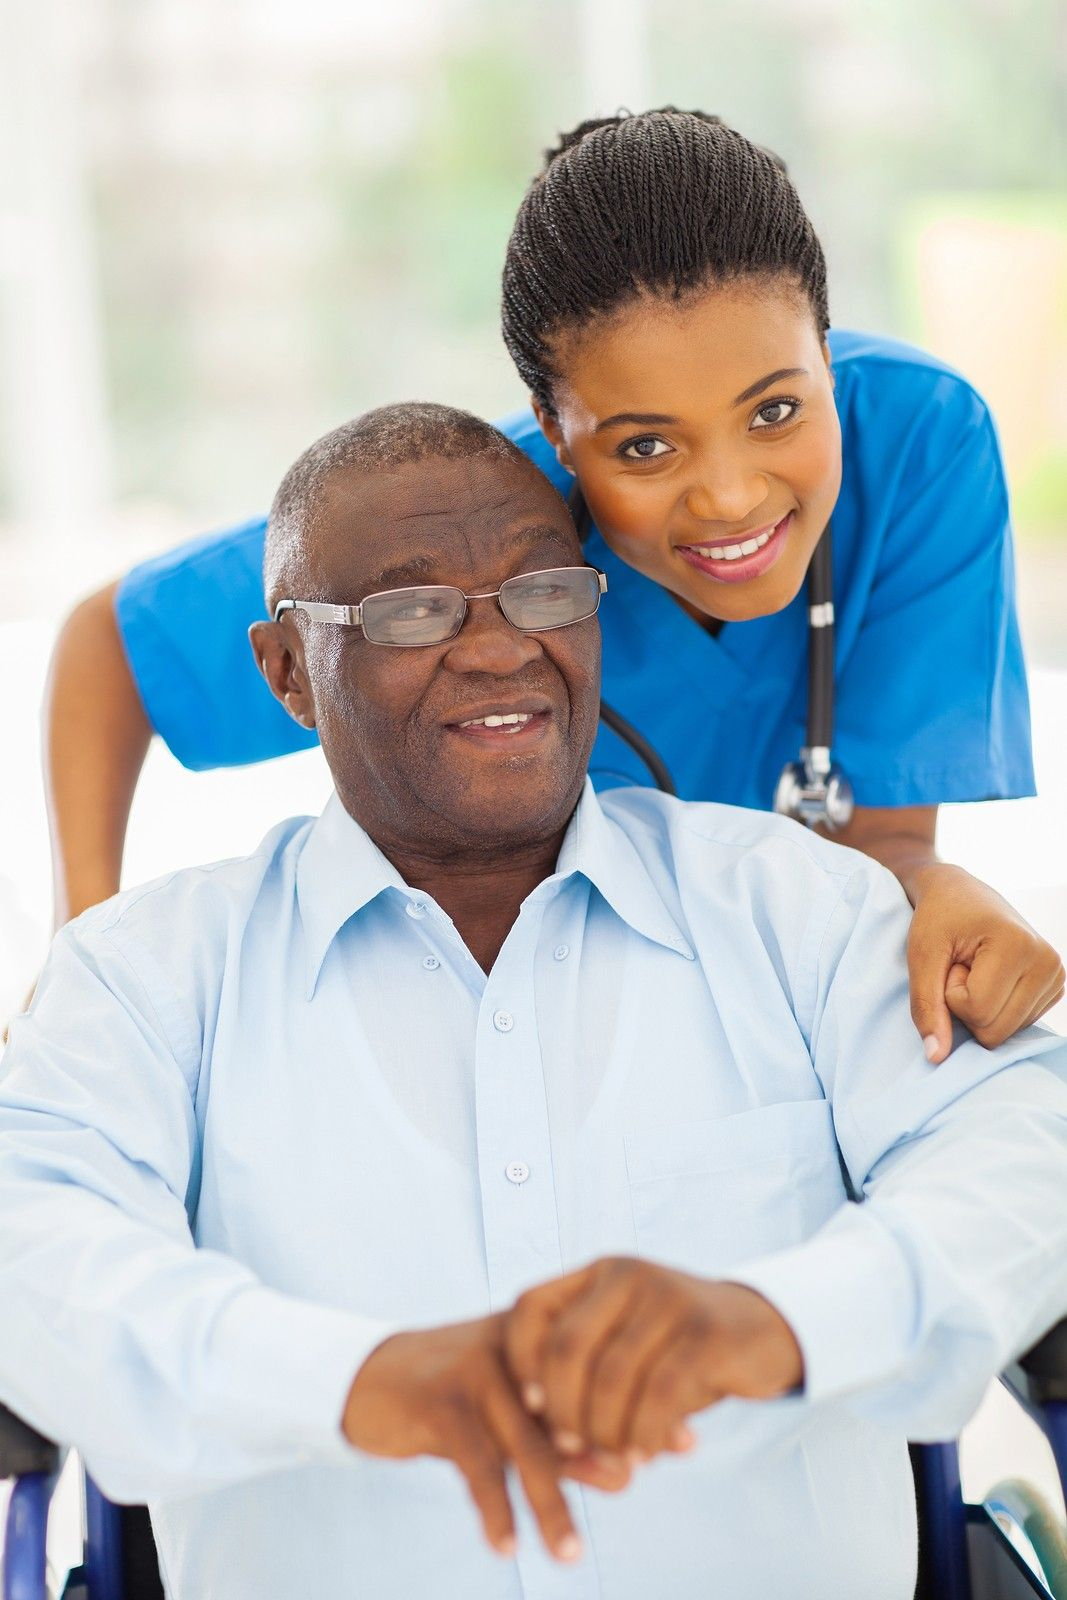 Want A Bigger Paycheck Home Health Aide Healthcare Jobs Healthcare Professionals